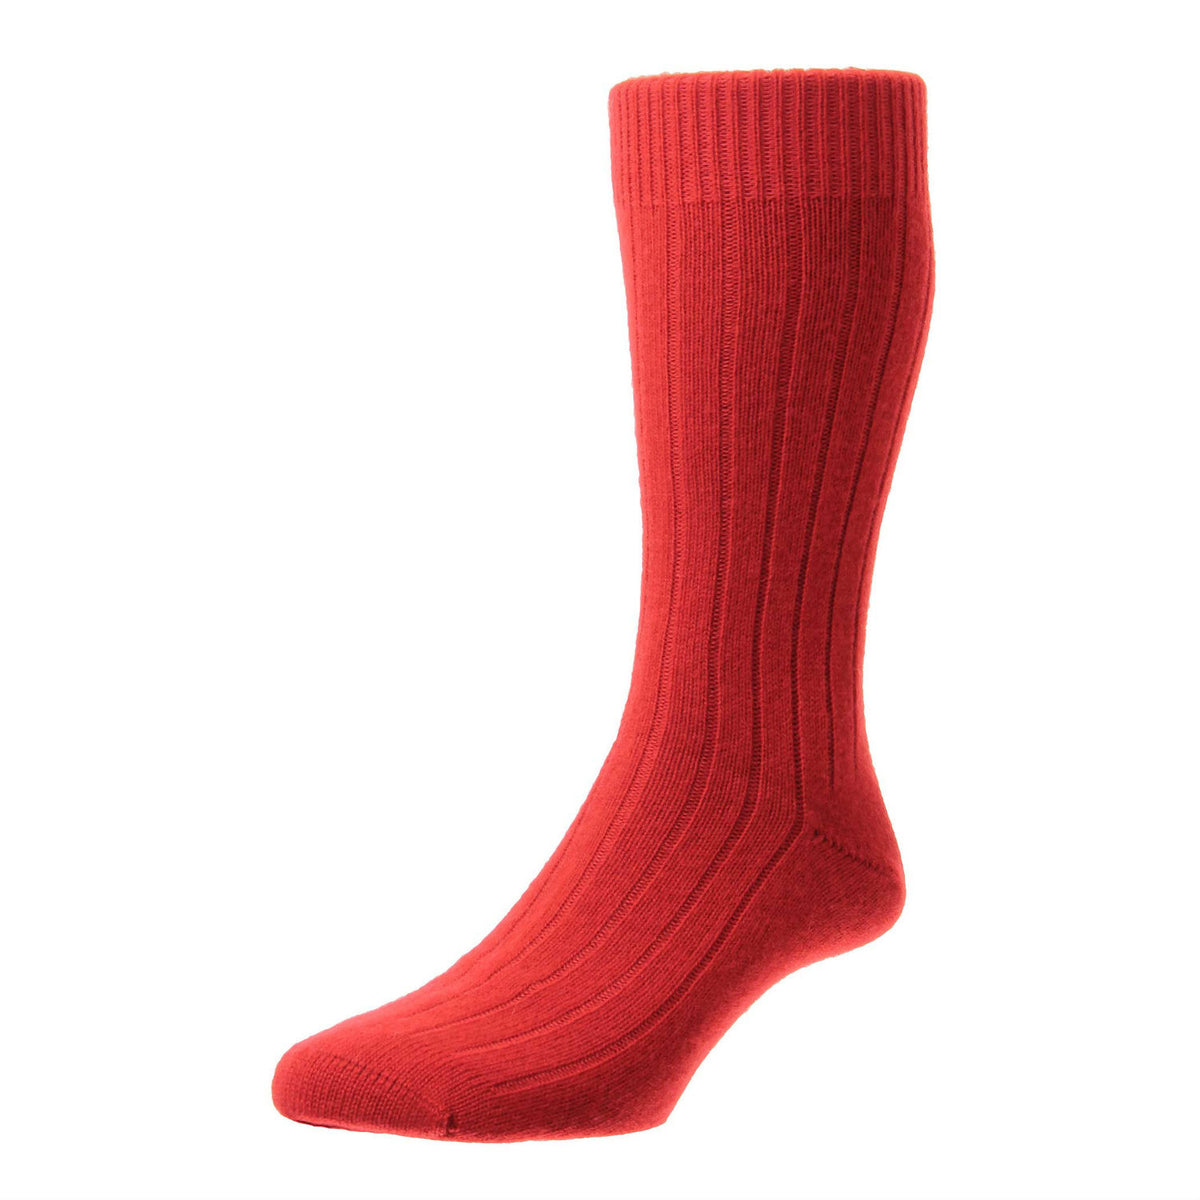 Red  | Mens Cashmere Socks | Made in England | Calf Length Sock | buy now at The Cashmere Choice London